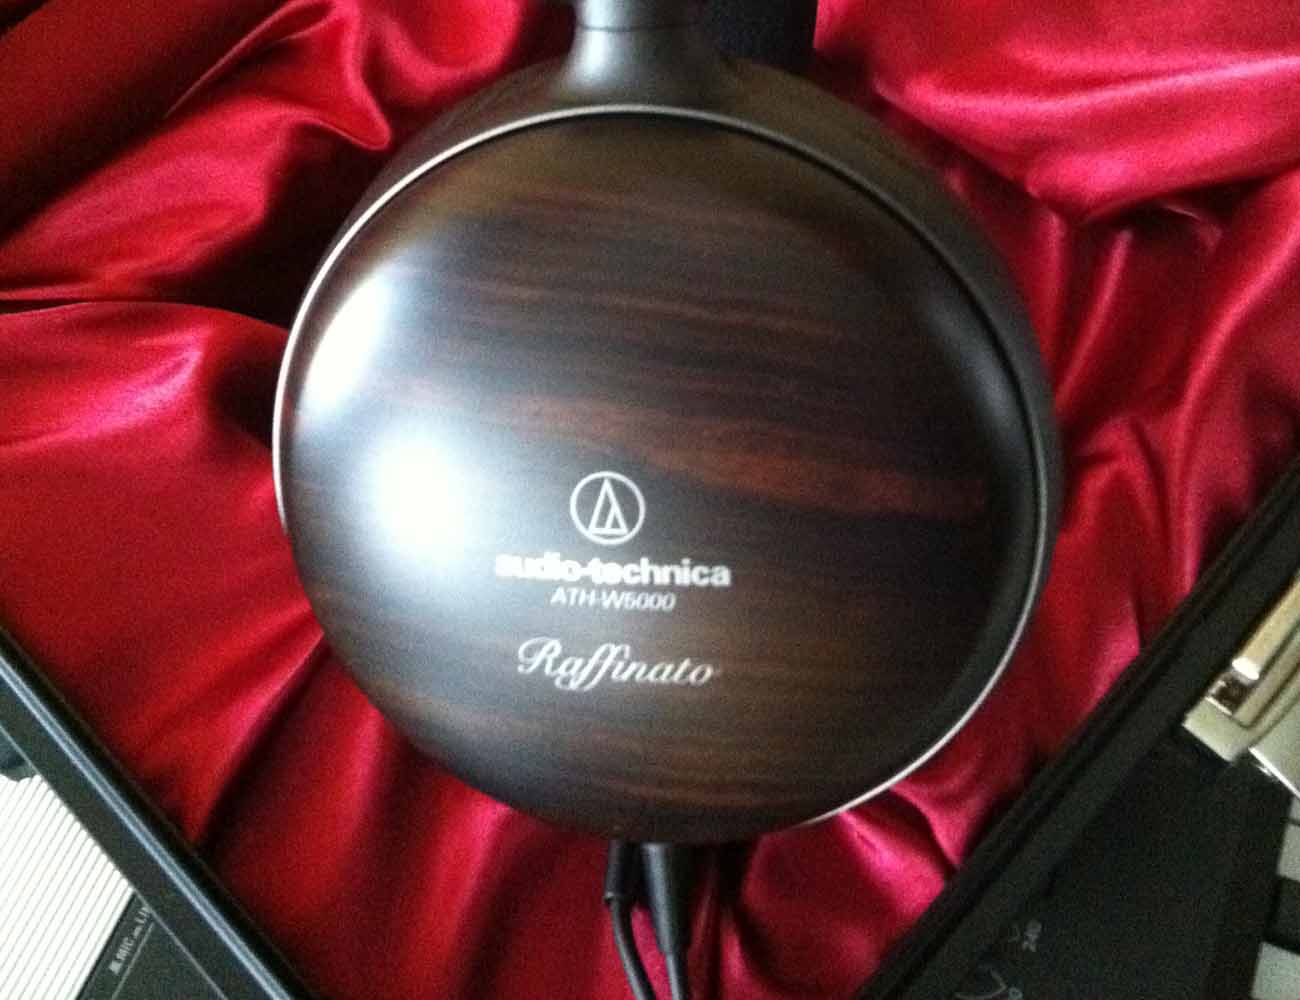 Audio-Technica ATH-W5000 Audiophile Headphones